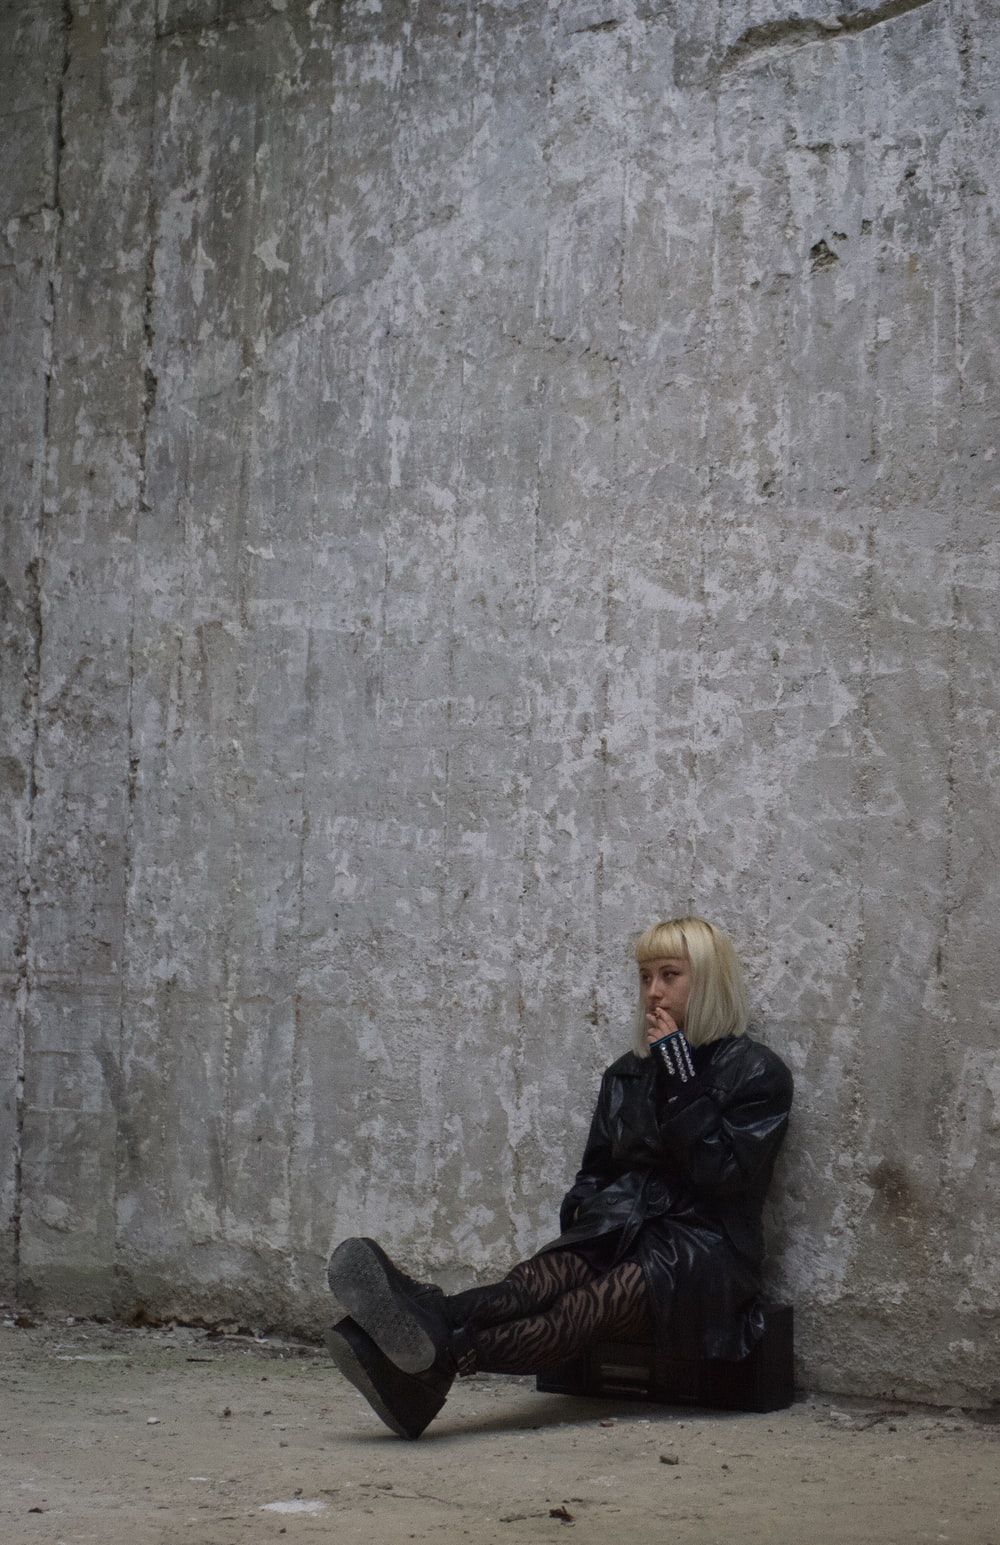 woman in black smoking by a gray wall